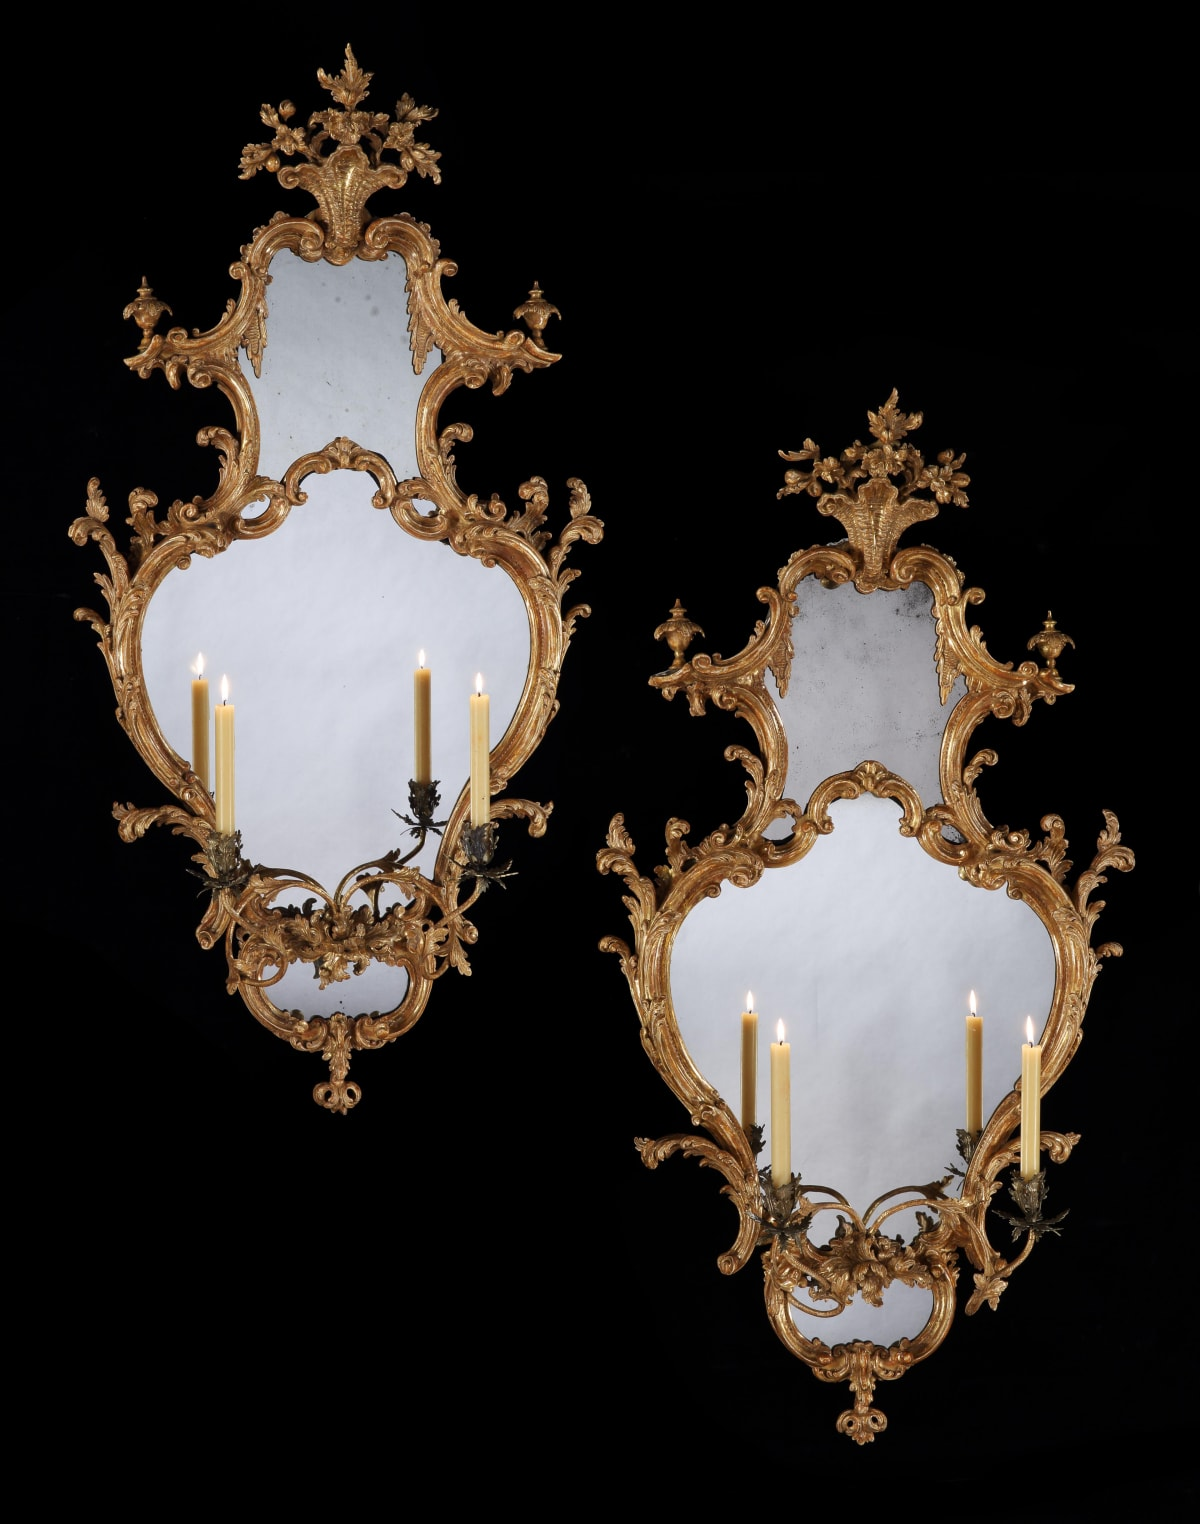 A PAIR OF GEORGE III GILTWOOD GIRANDOLES, ENGLISH, CIRCA 1765